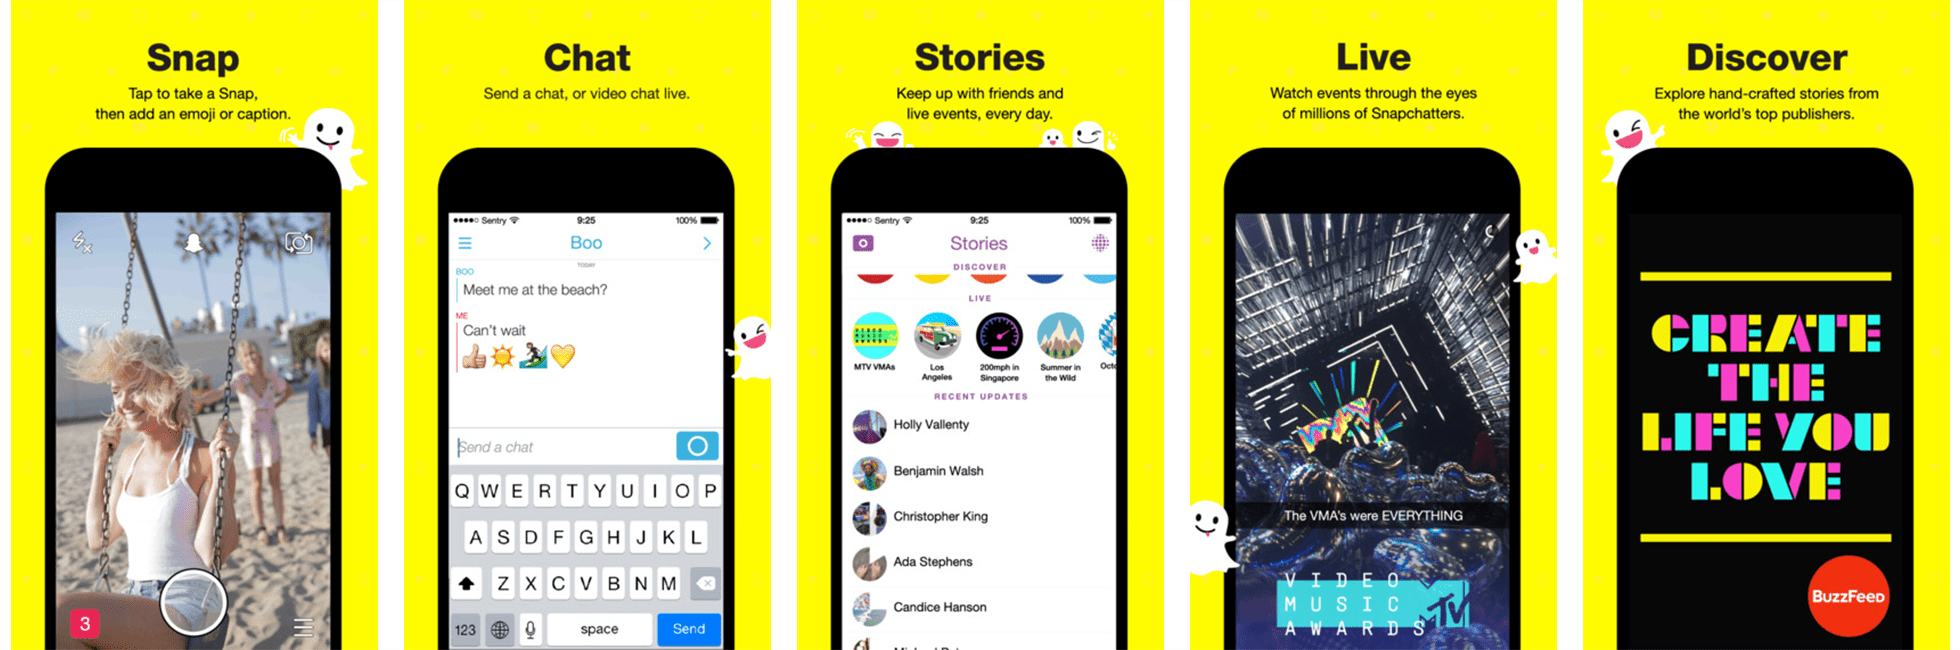 App Screenshot Example Snapchat App, Stationary branding